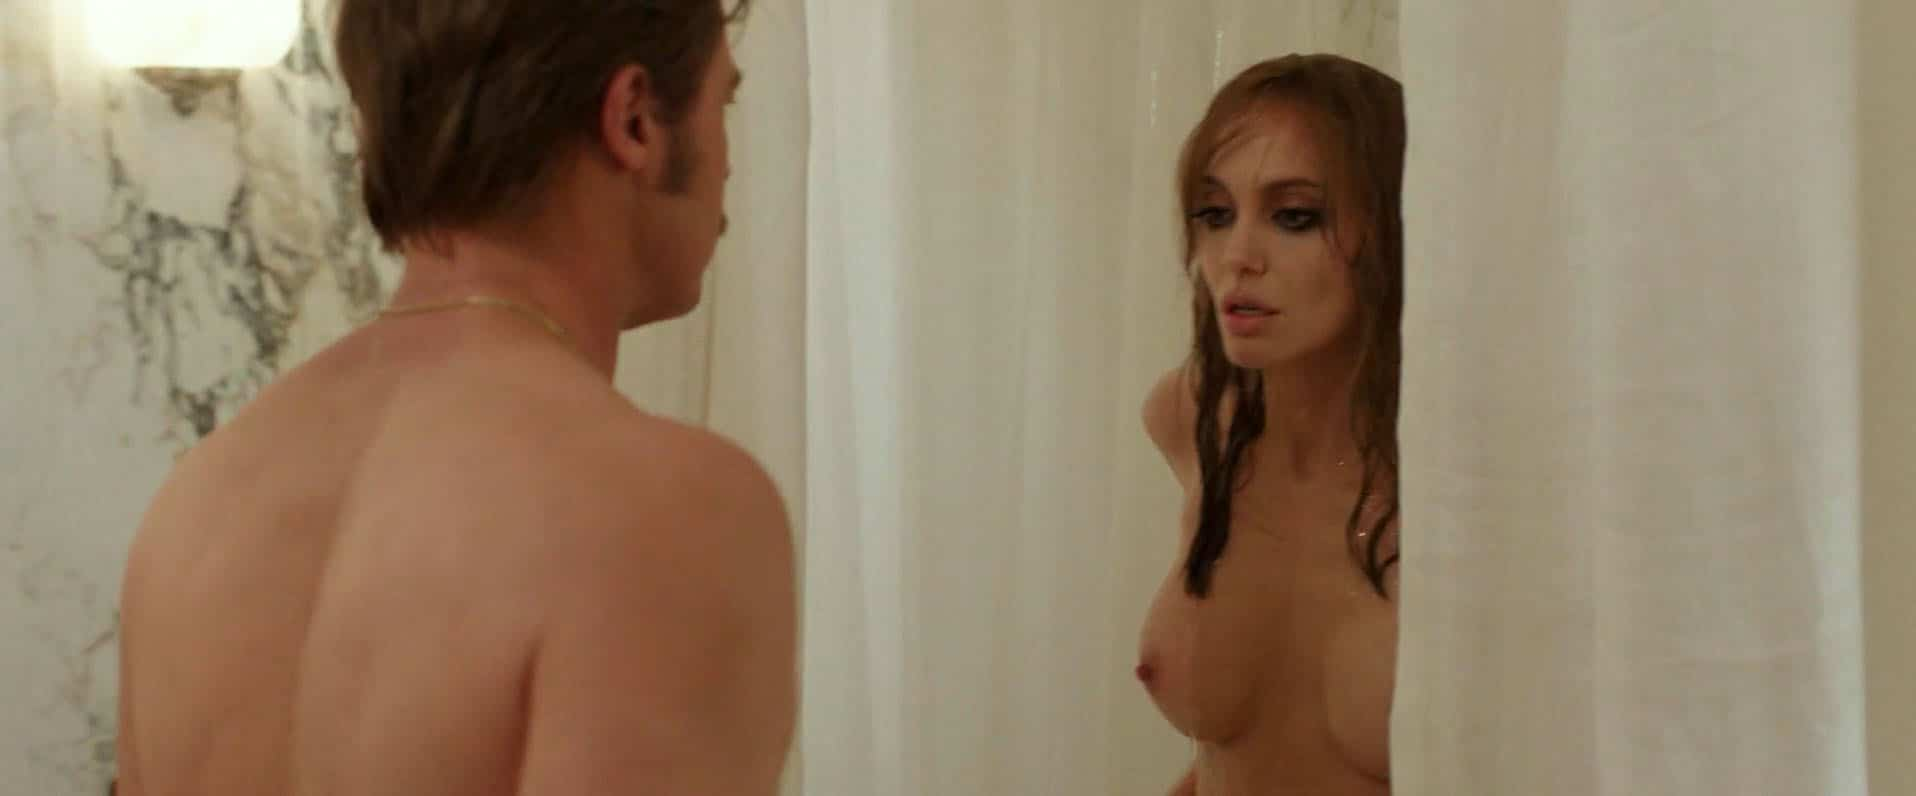 Angelina jolie nude video